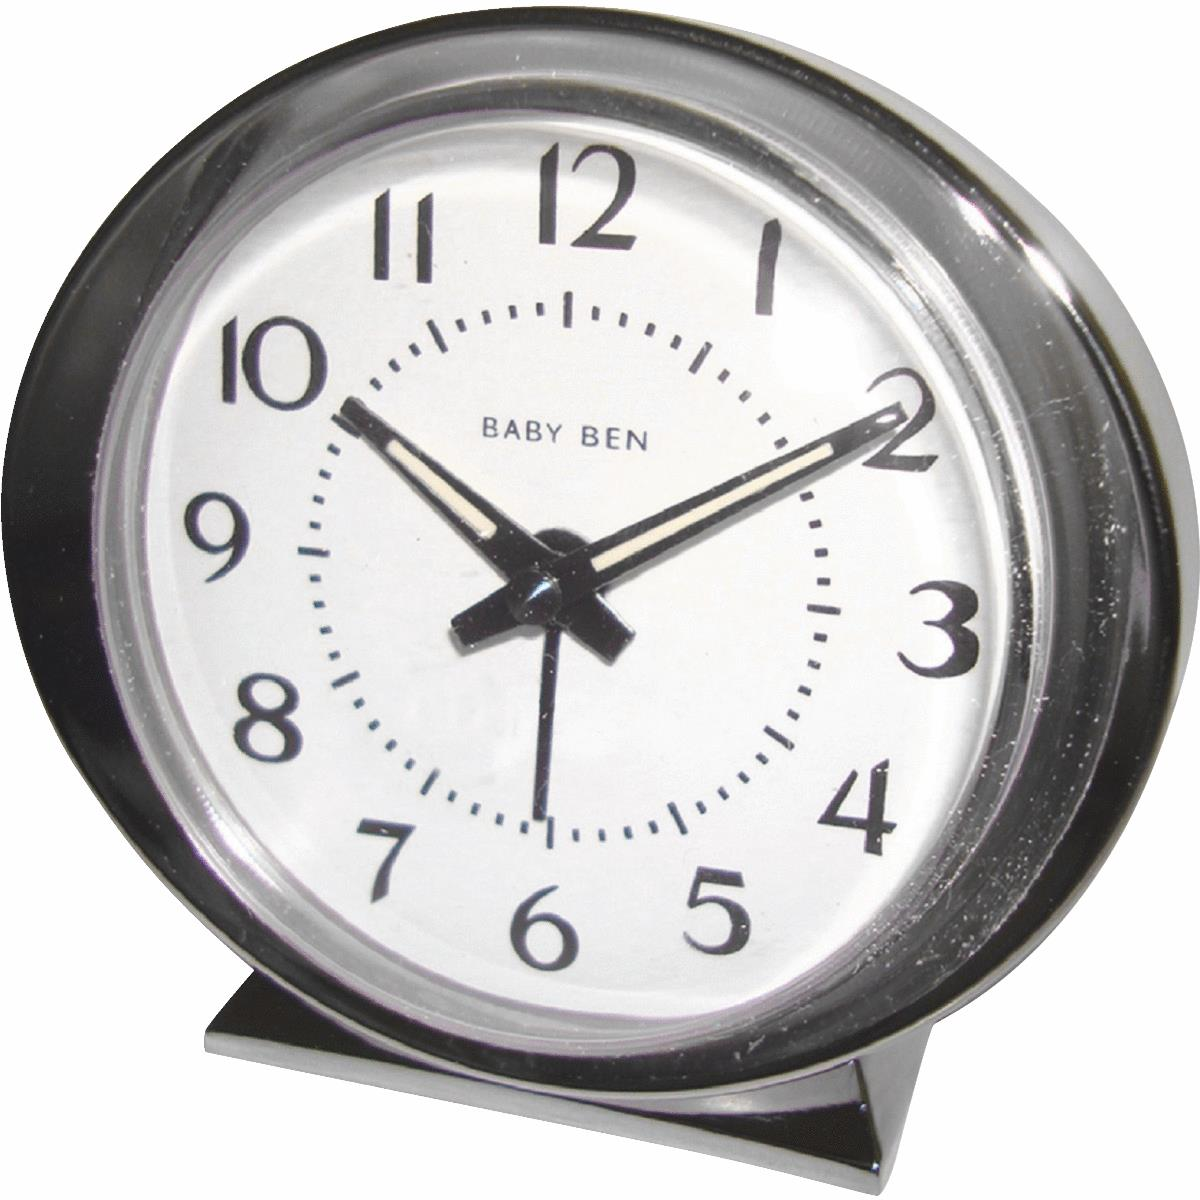 Baby Ben Classic Style Battery Operated Alarm Clock